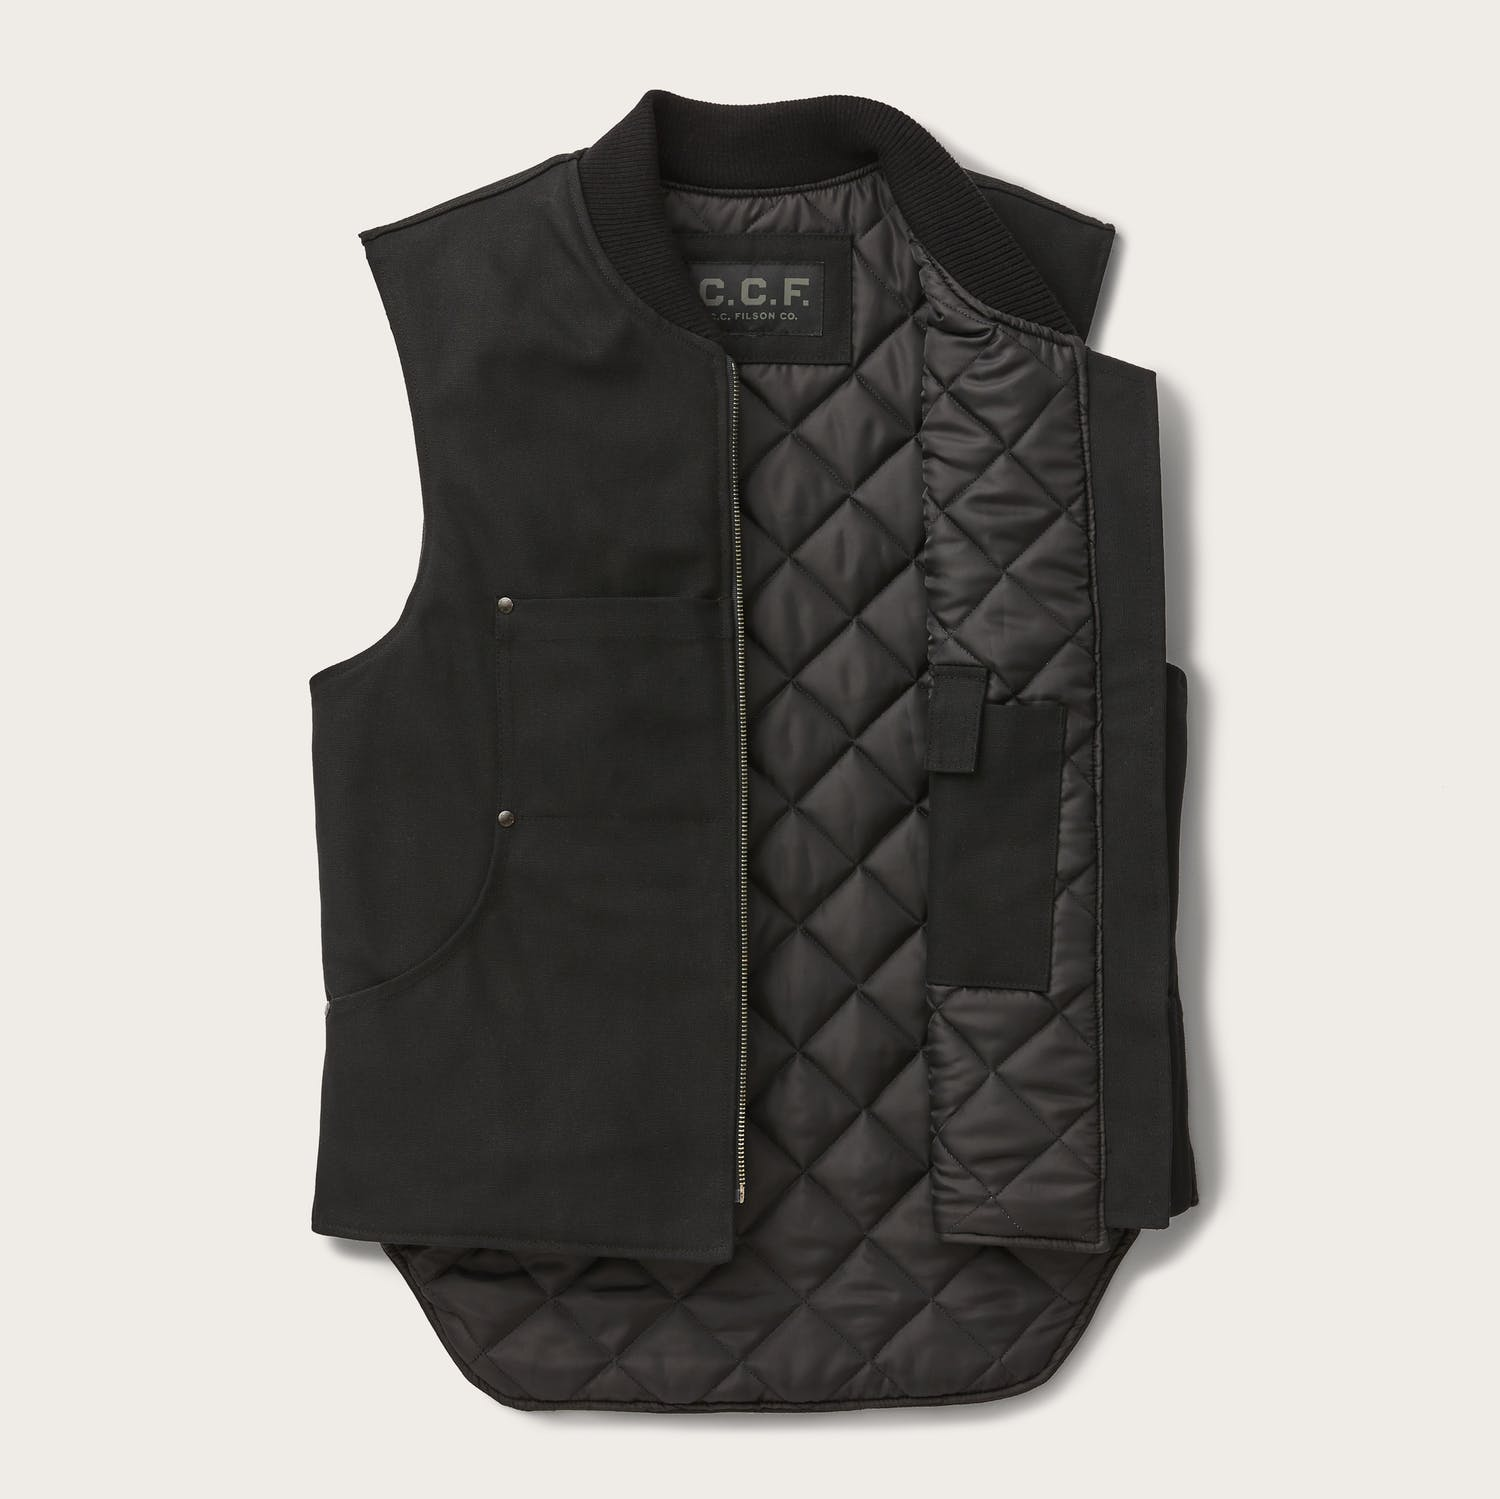 Filson - C.C.F. WORK VEST - Black - The Populess Company